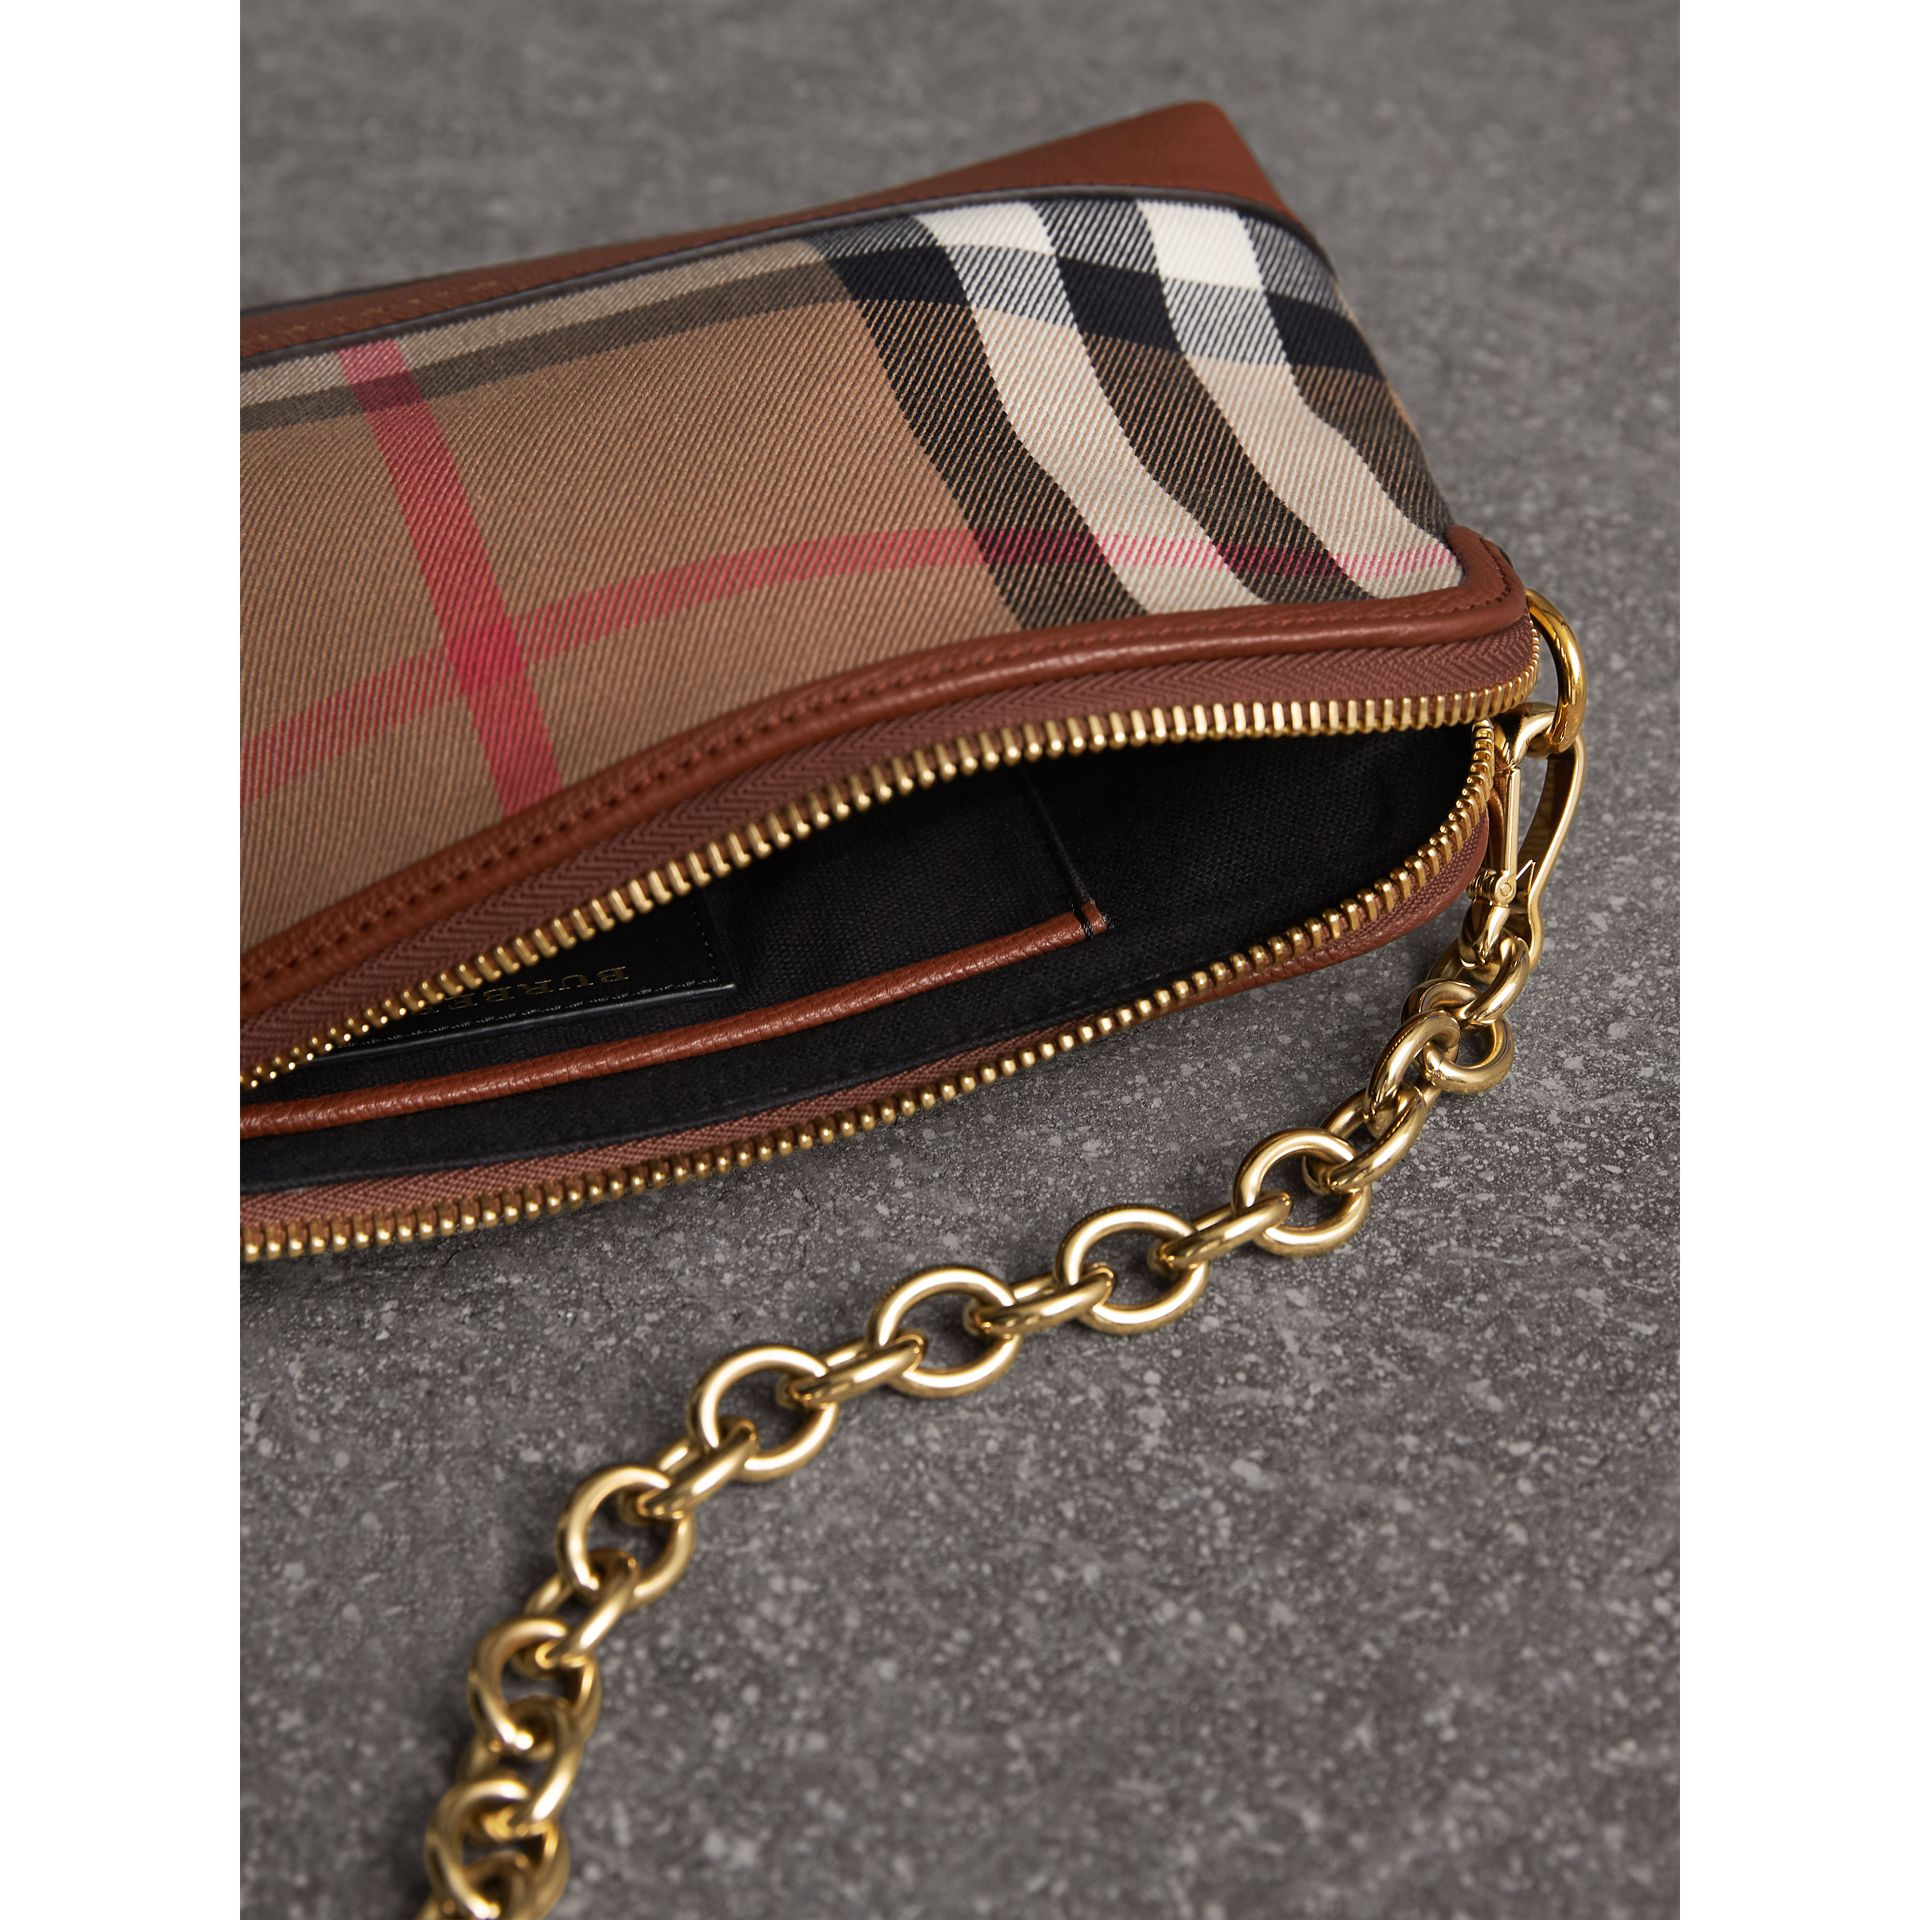 House Check and Leather Clutch Bag in Tan - Women | Burberry - gallery image 5